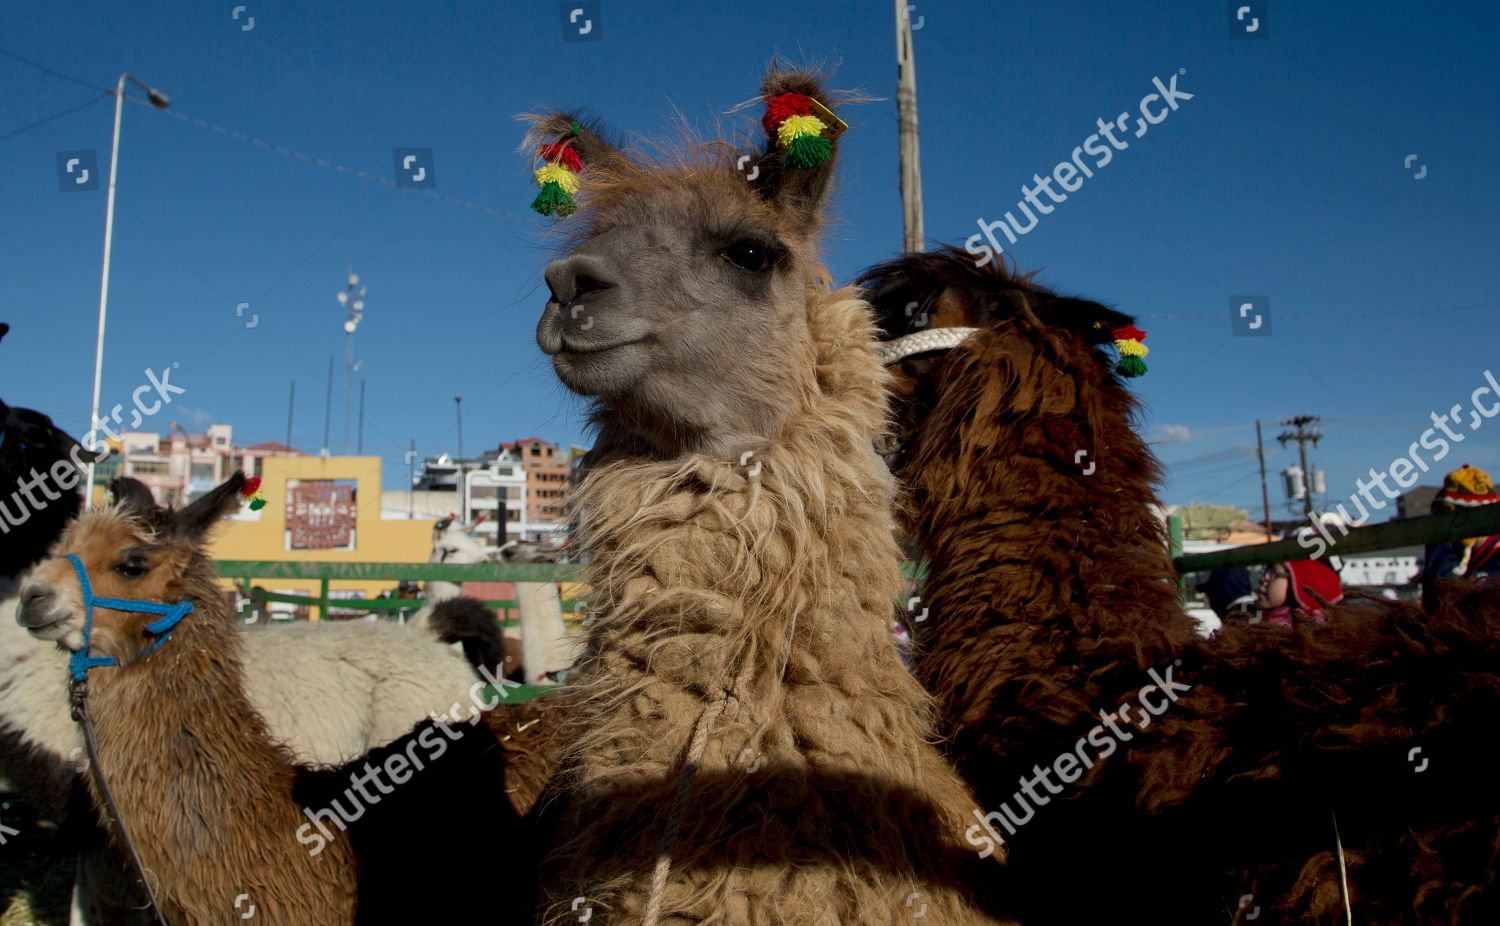 Expo Stand Bolivia : Llamas stand others during annual camelid expo editorial stock